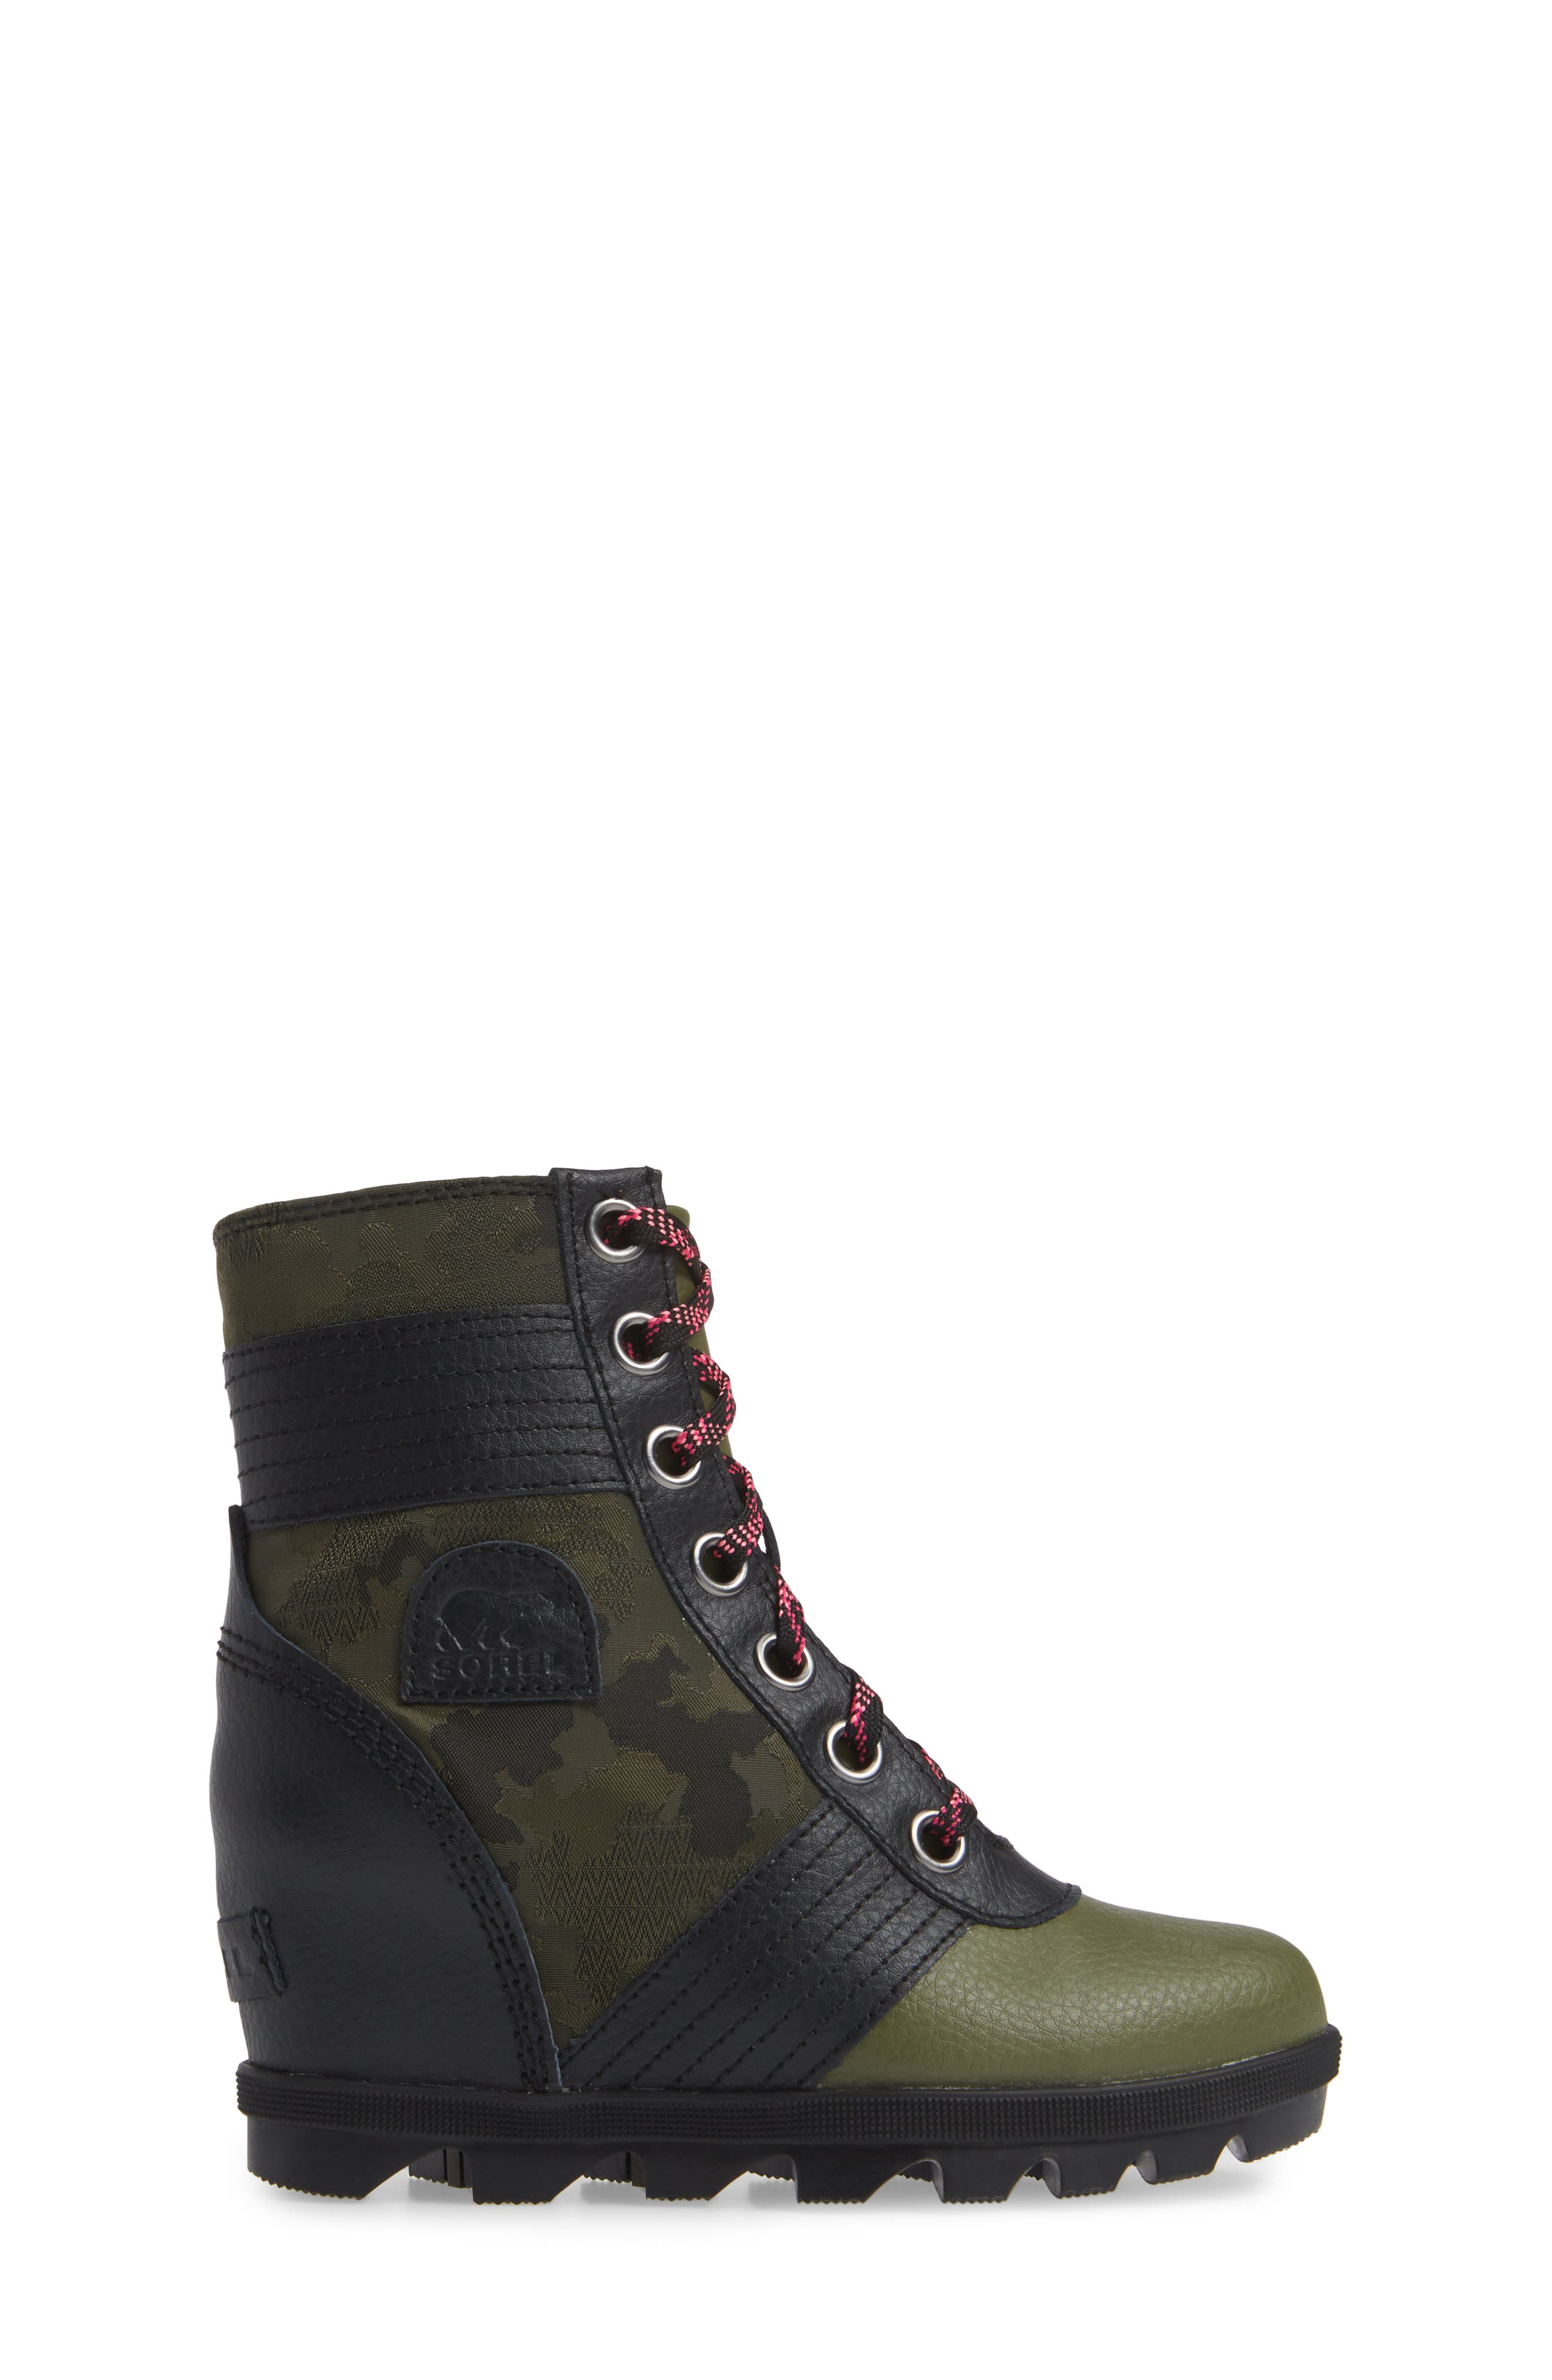 Lexie Waterproof Wedge Bootie,                             Alternate thumbnail 3, color,                             HIKER GREEN/ BLACK